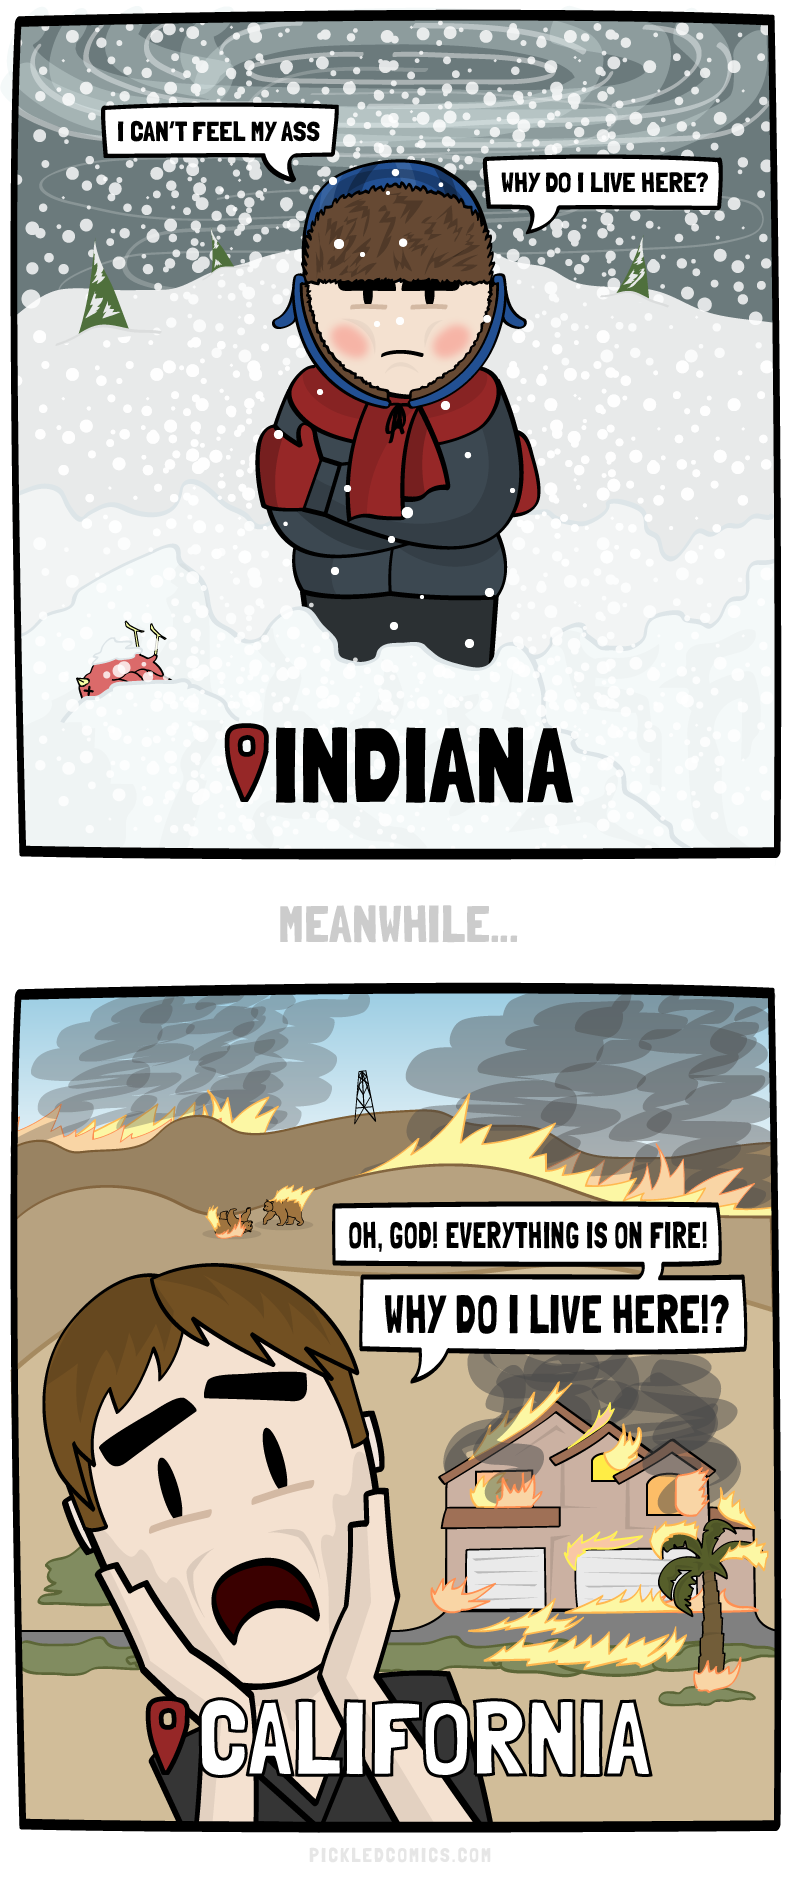 I can't feel my ass. Why do I live here? Indiana. Meanwhile... Oh, God! Everything is on fire! Why do I live here!?